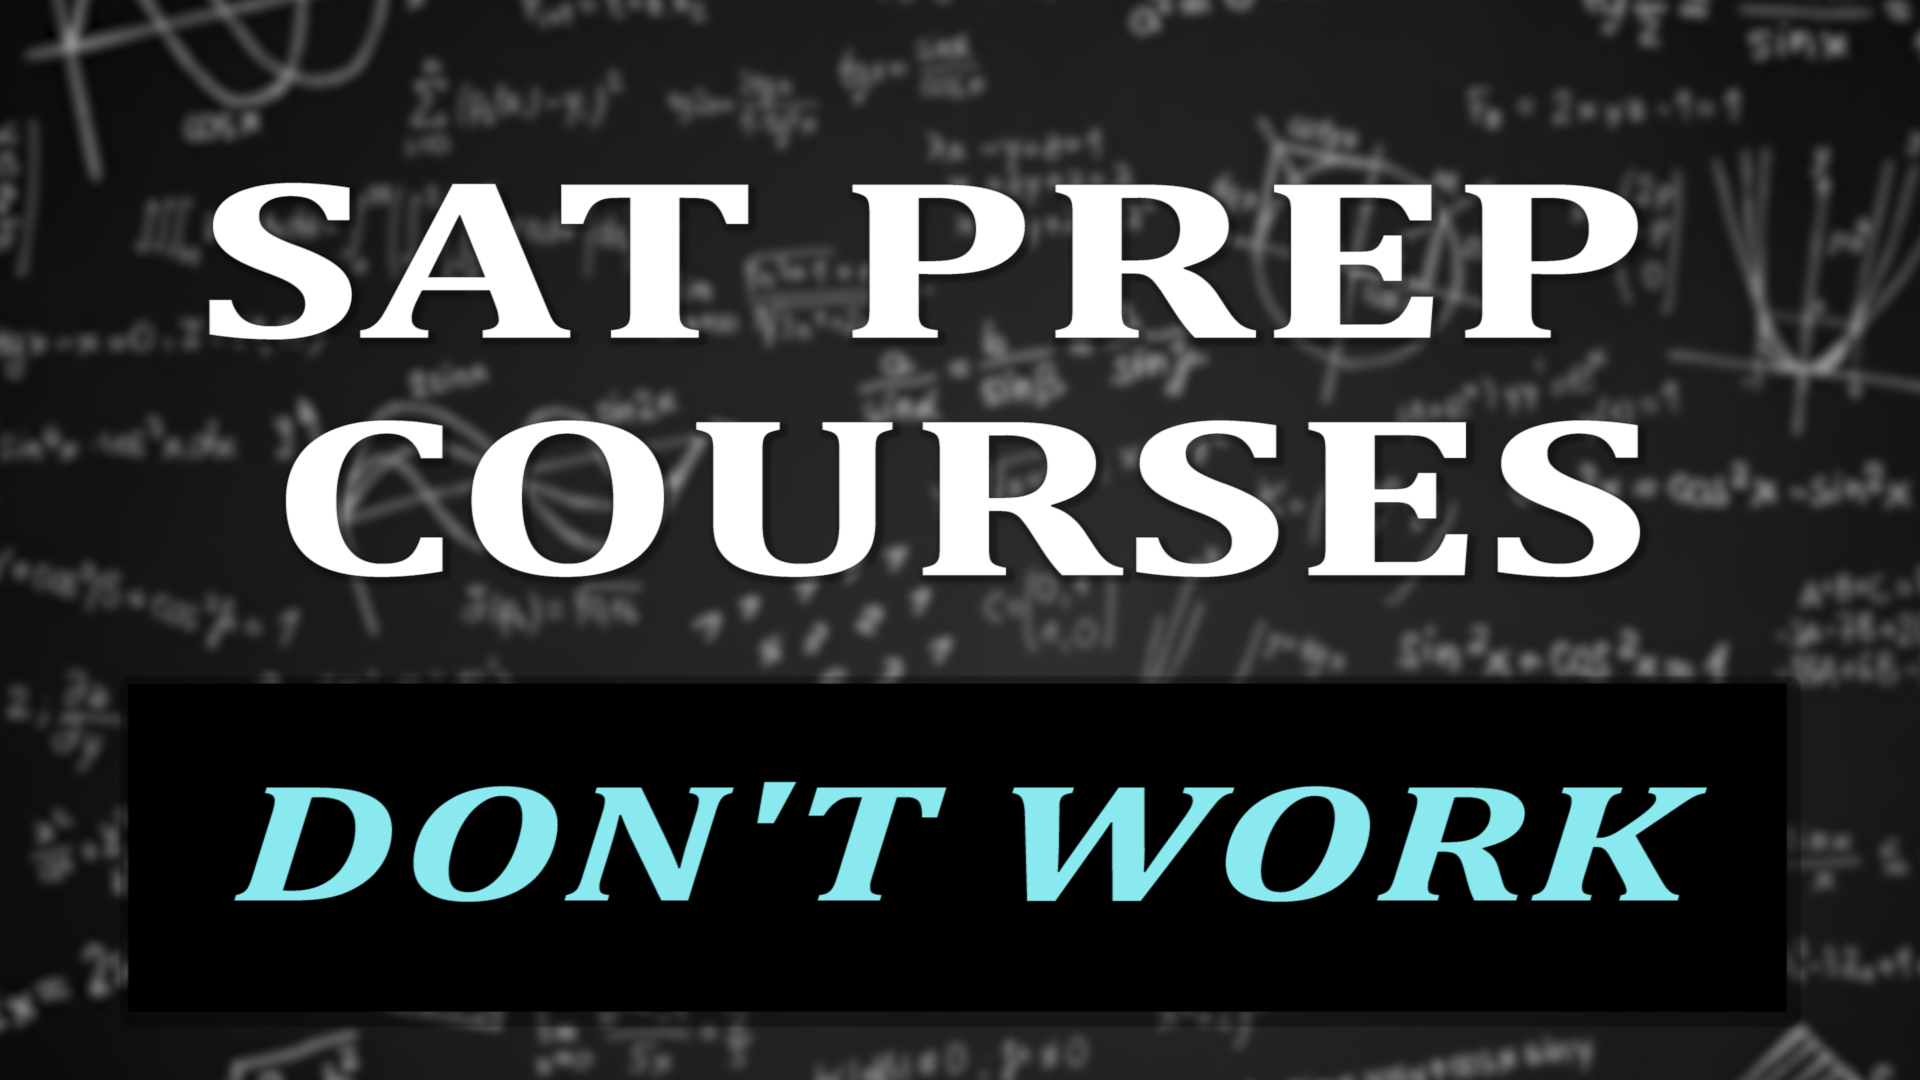 SAT Test Prep Courses Don't Work